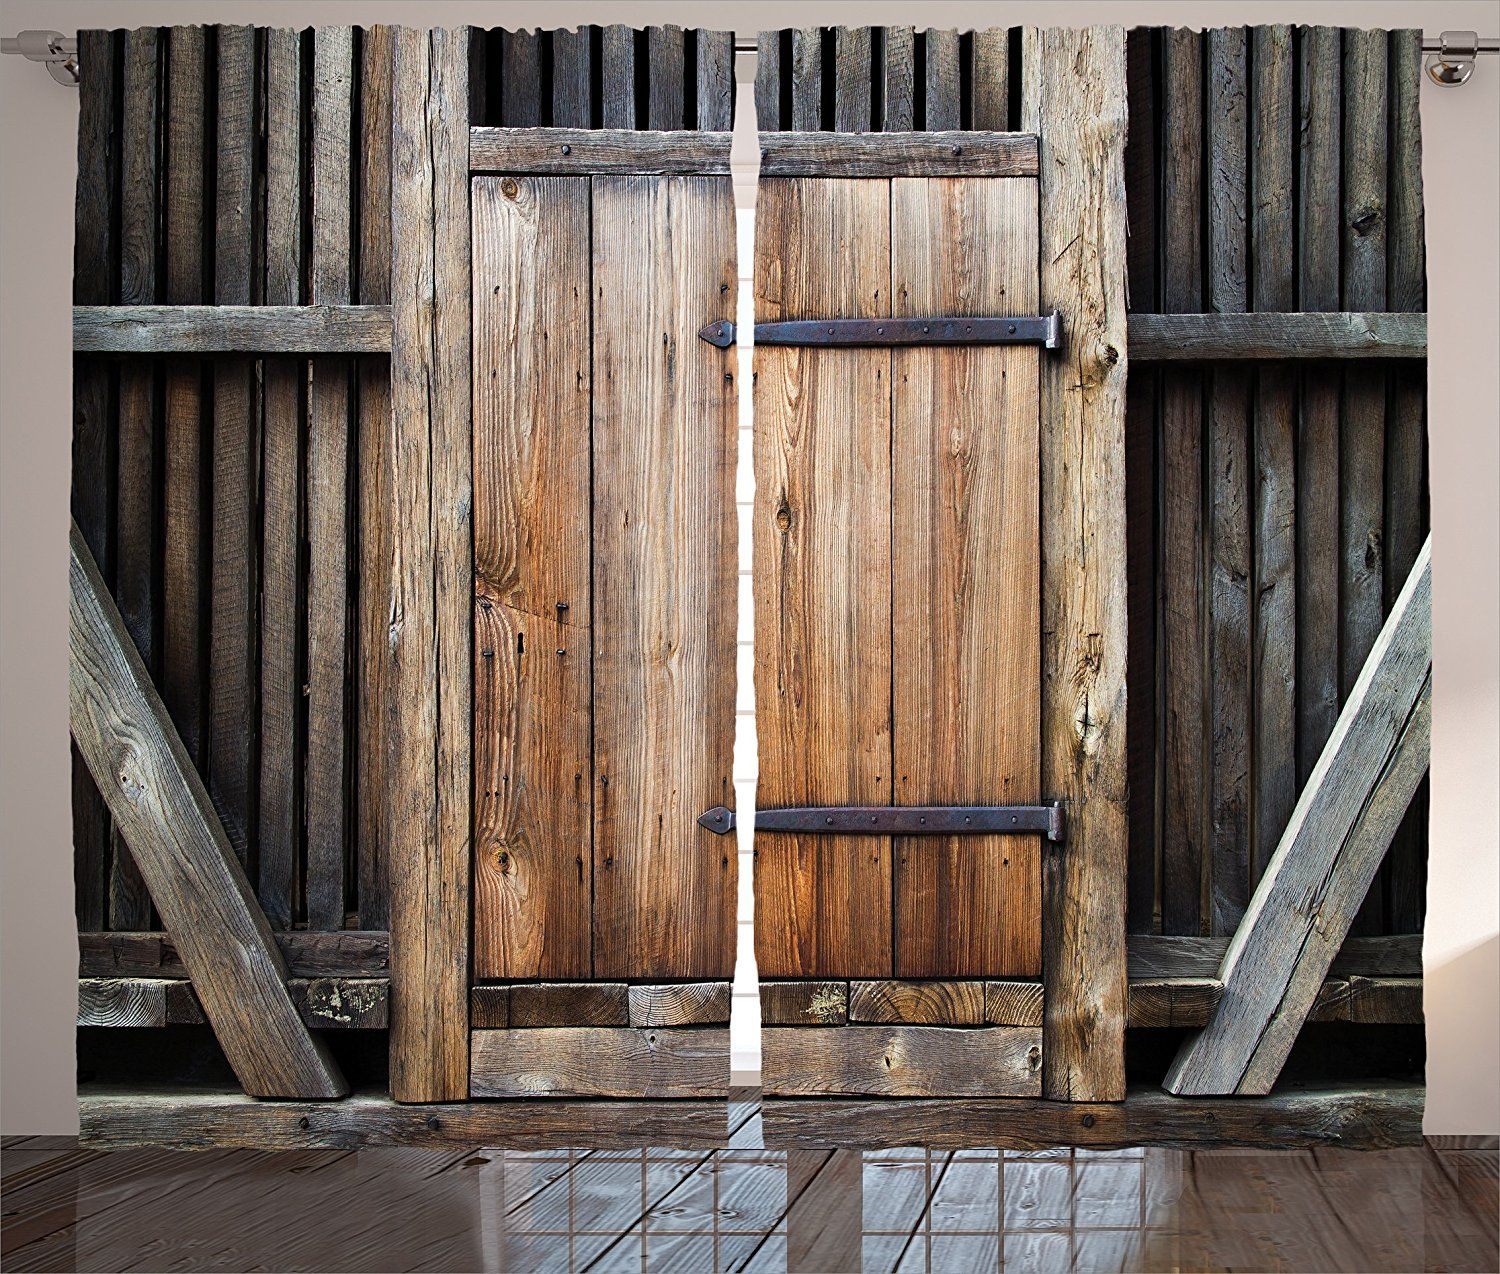 Antique Decor Curtains By Ambesonne Rustic Antique Wooden Door Exterior Facades Rural Barn Timber Weat Primitive Bathrooms Wooden Doors Fabric Shower Curtains